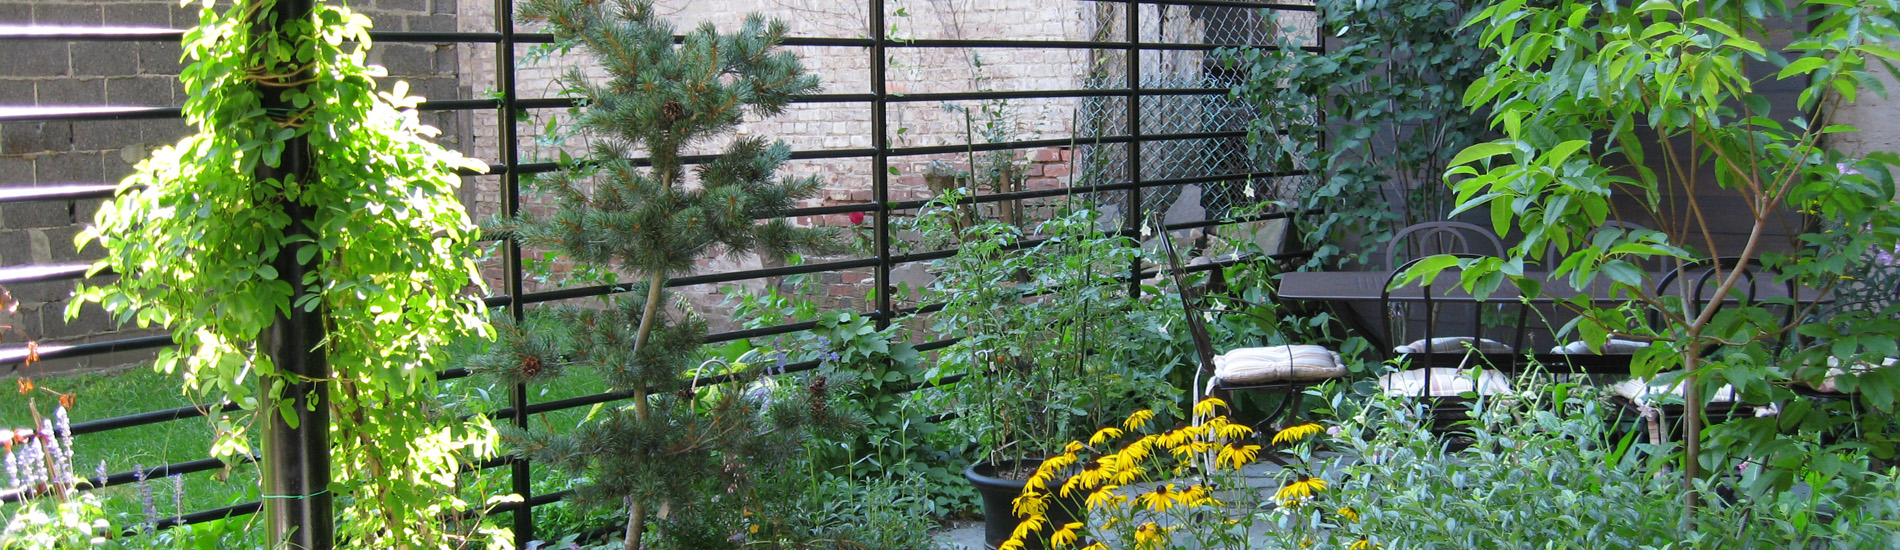 A photo of a private backyard garden in Greenpoint NYC